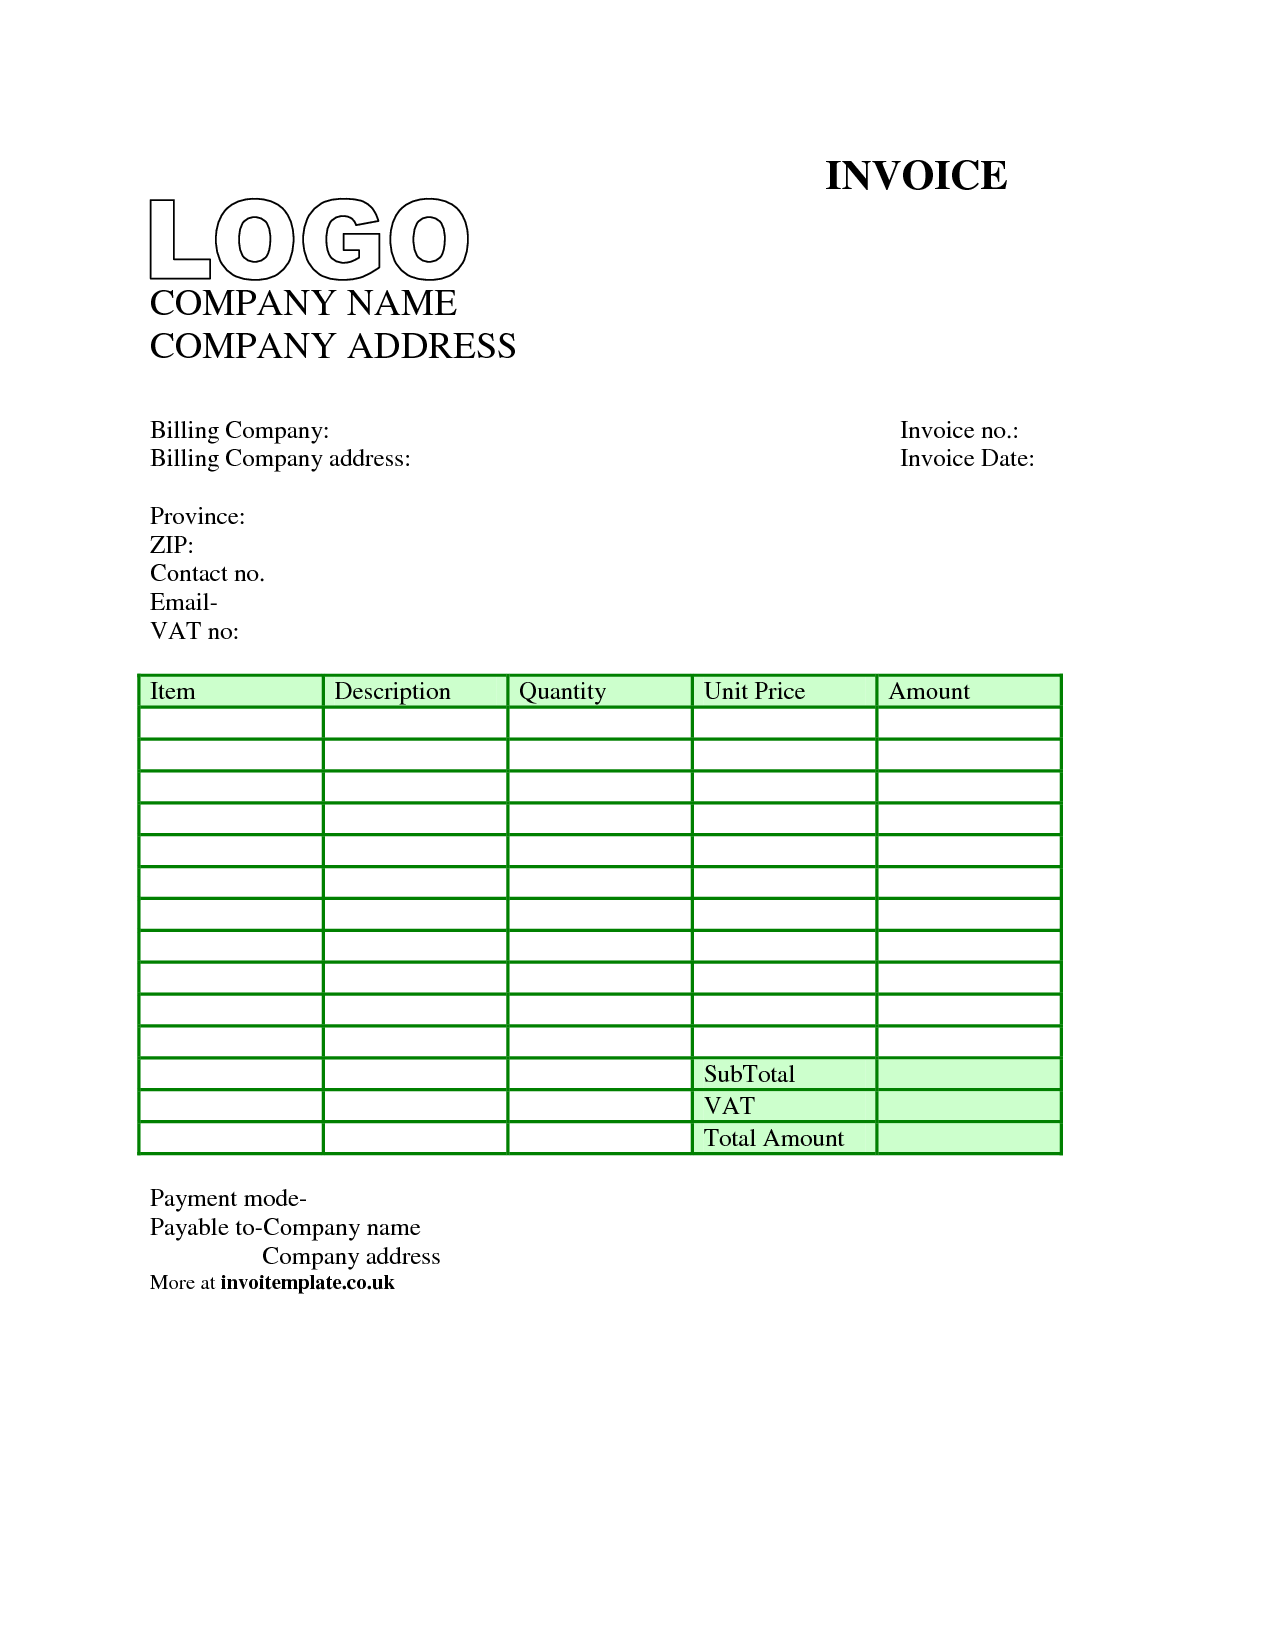 Invoice template uk word invoice example for Free invoice template